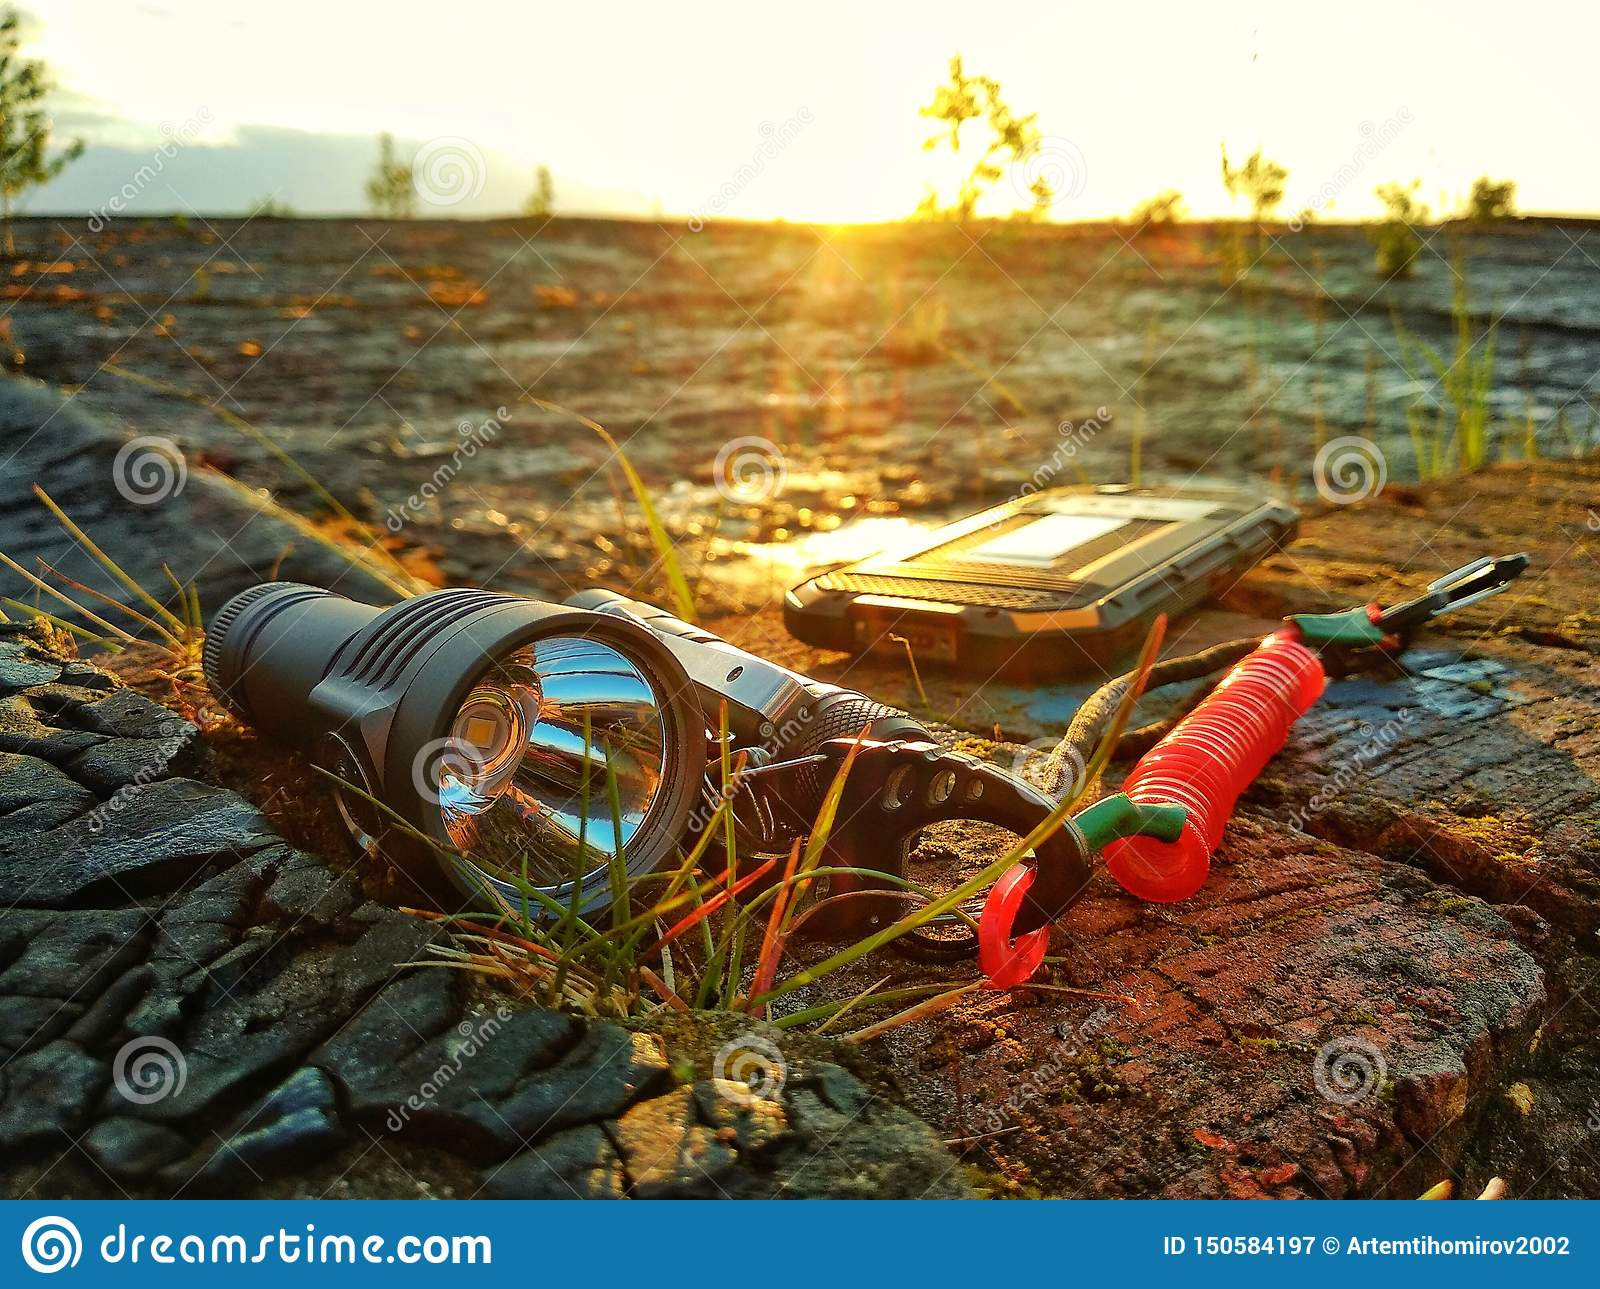 Tourist equipment: a flashlight, a knife, a protected telephone